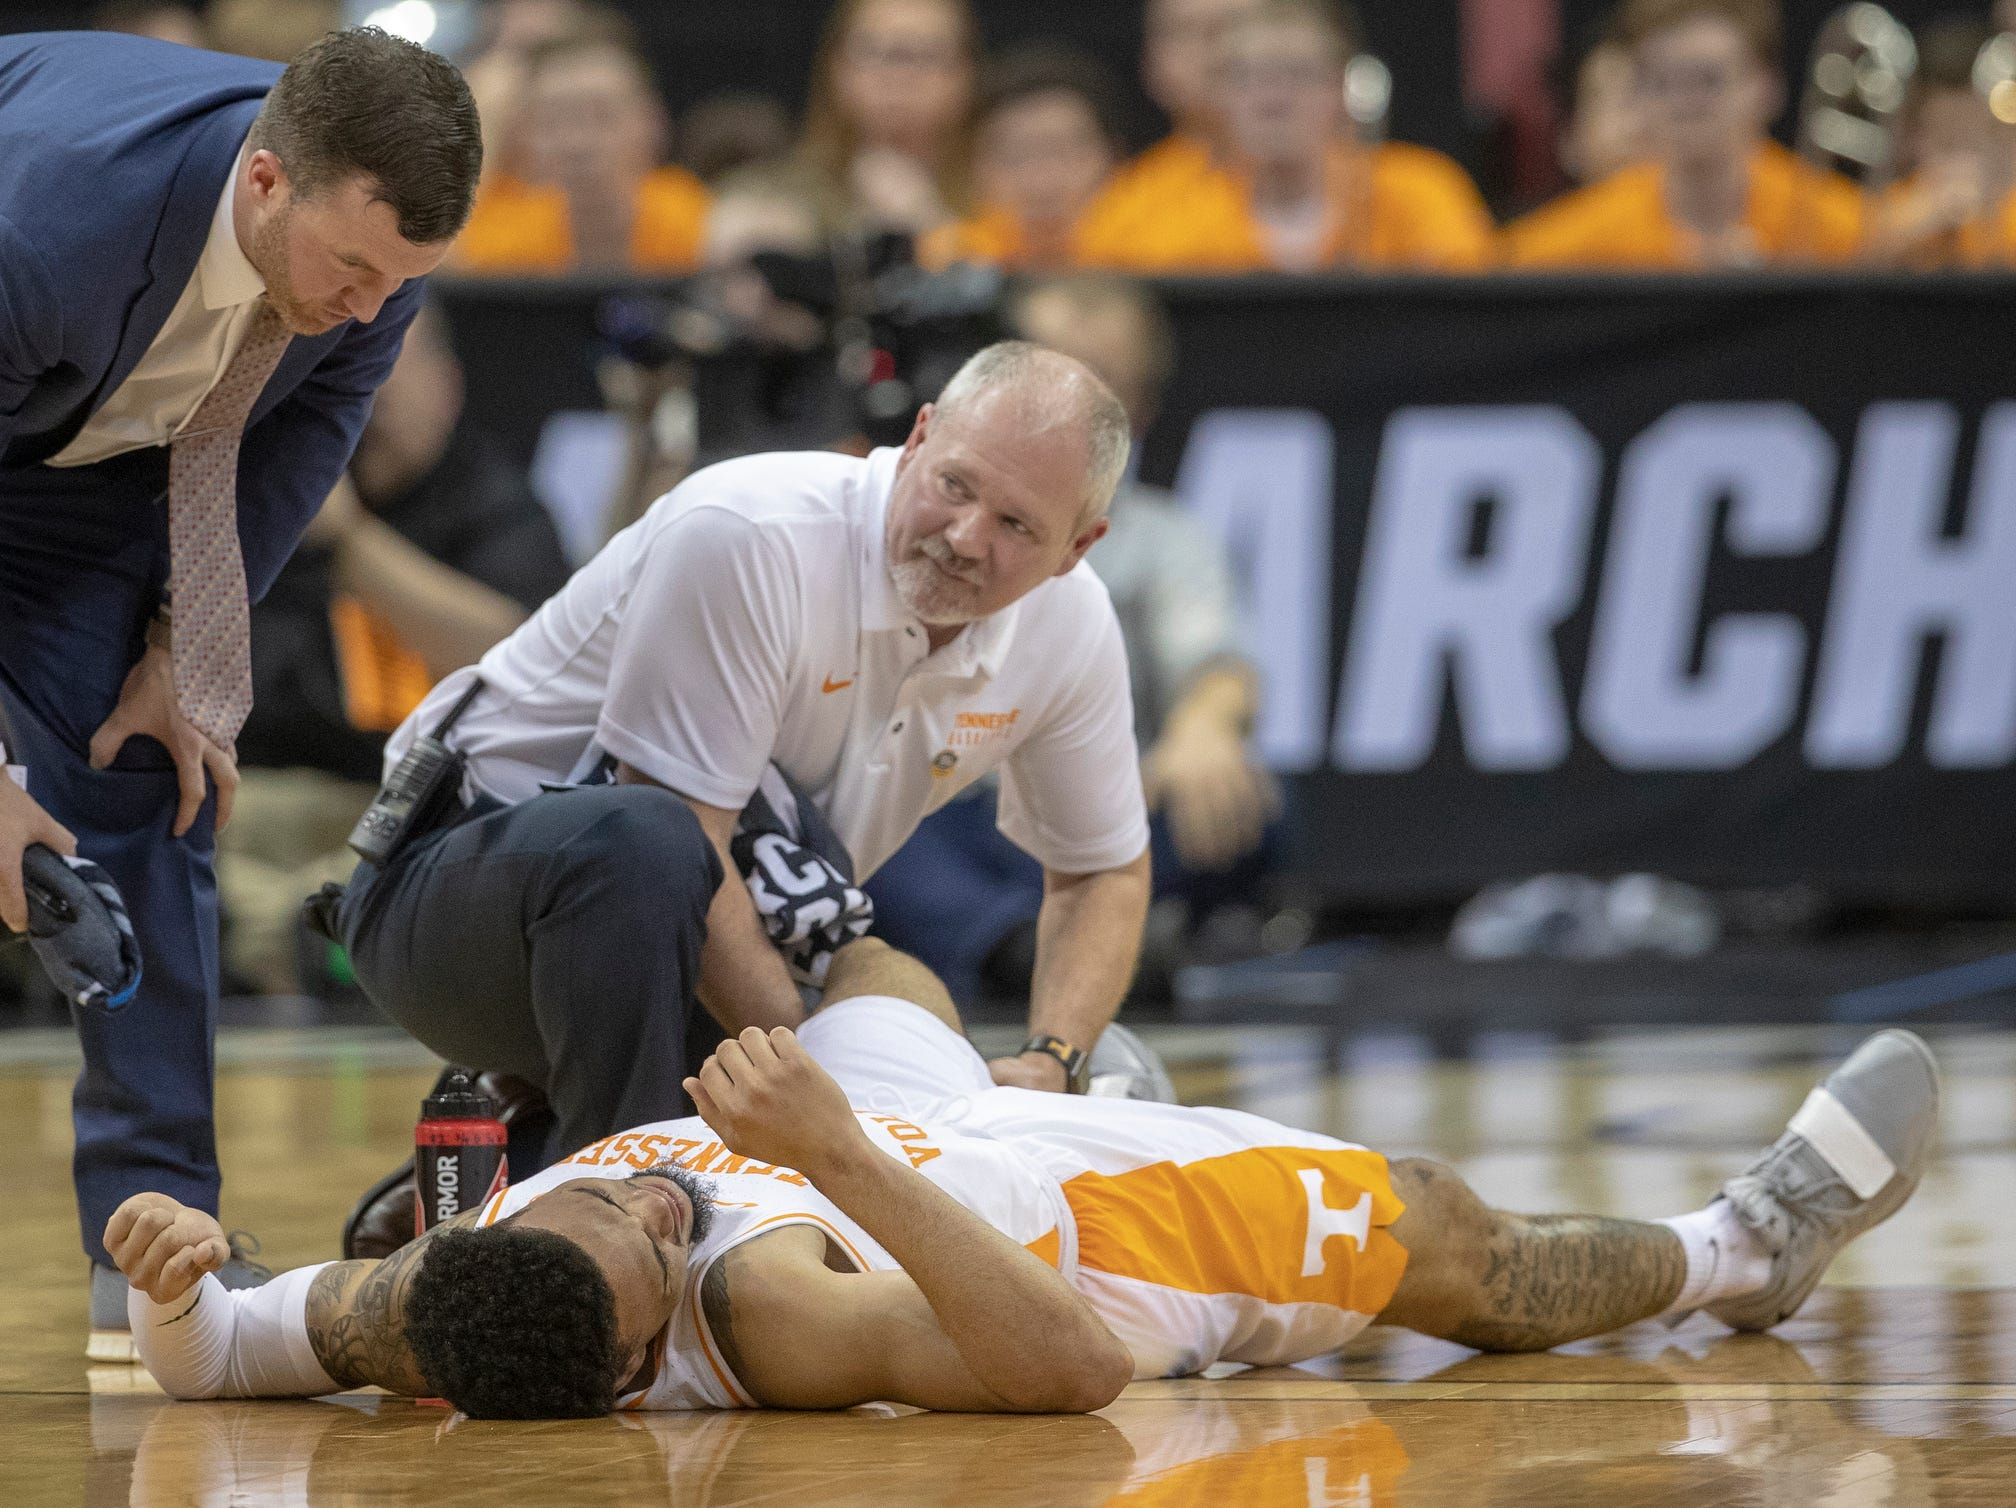 Lamonte Turner of the Tennessee Volunteers is tended to after an injury sidelined him momentarily during the game with Purdue, NCAA Division 1 Men's Basketball 'Sweet Sixteen' game, KFC Yum Center, Louisville, Thursday, March 28, 2019. Purdue beat Tennessee 99-94.